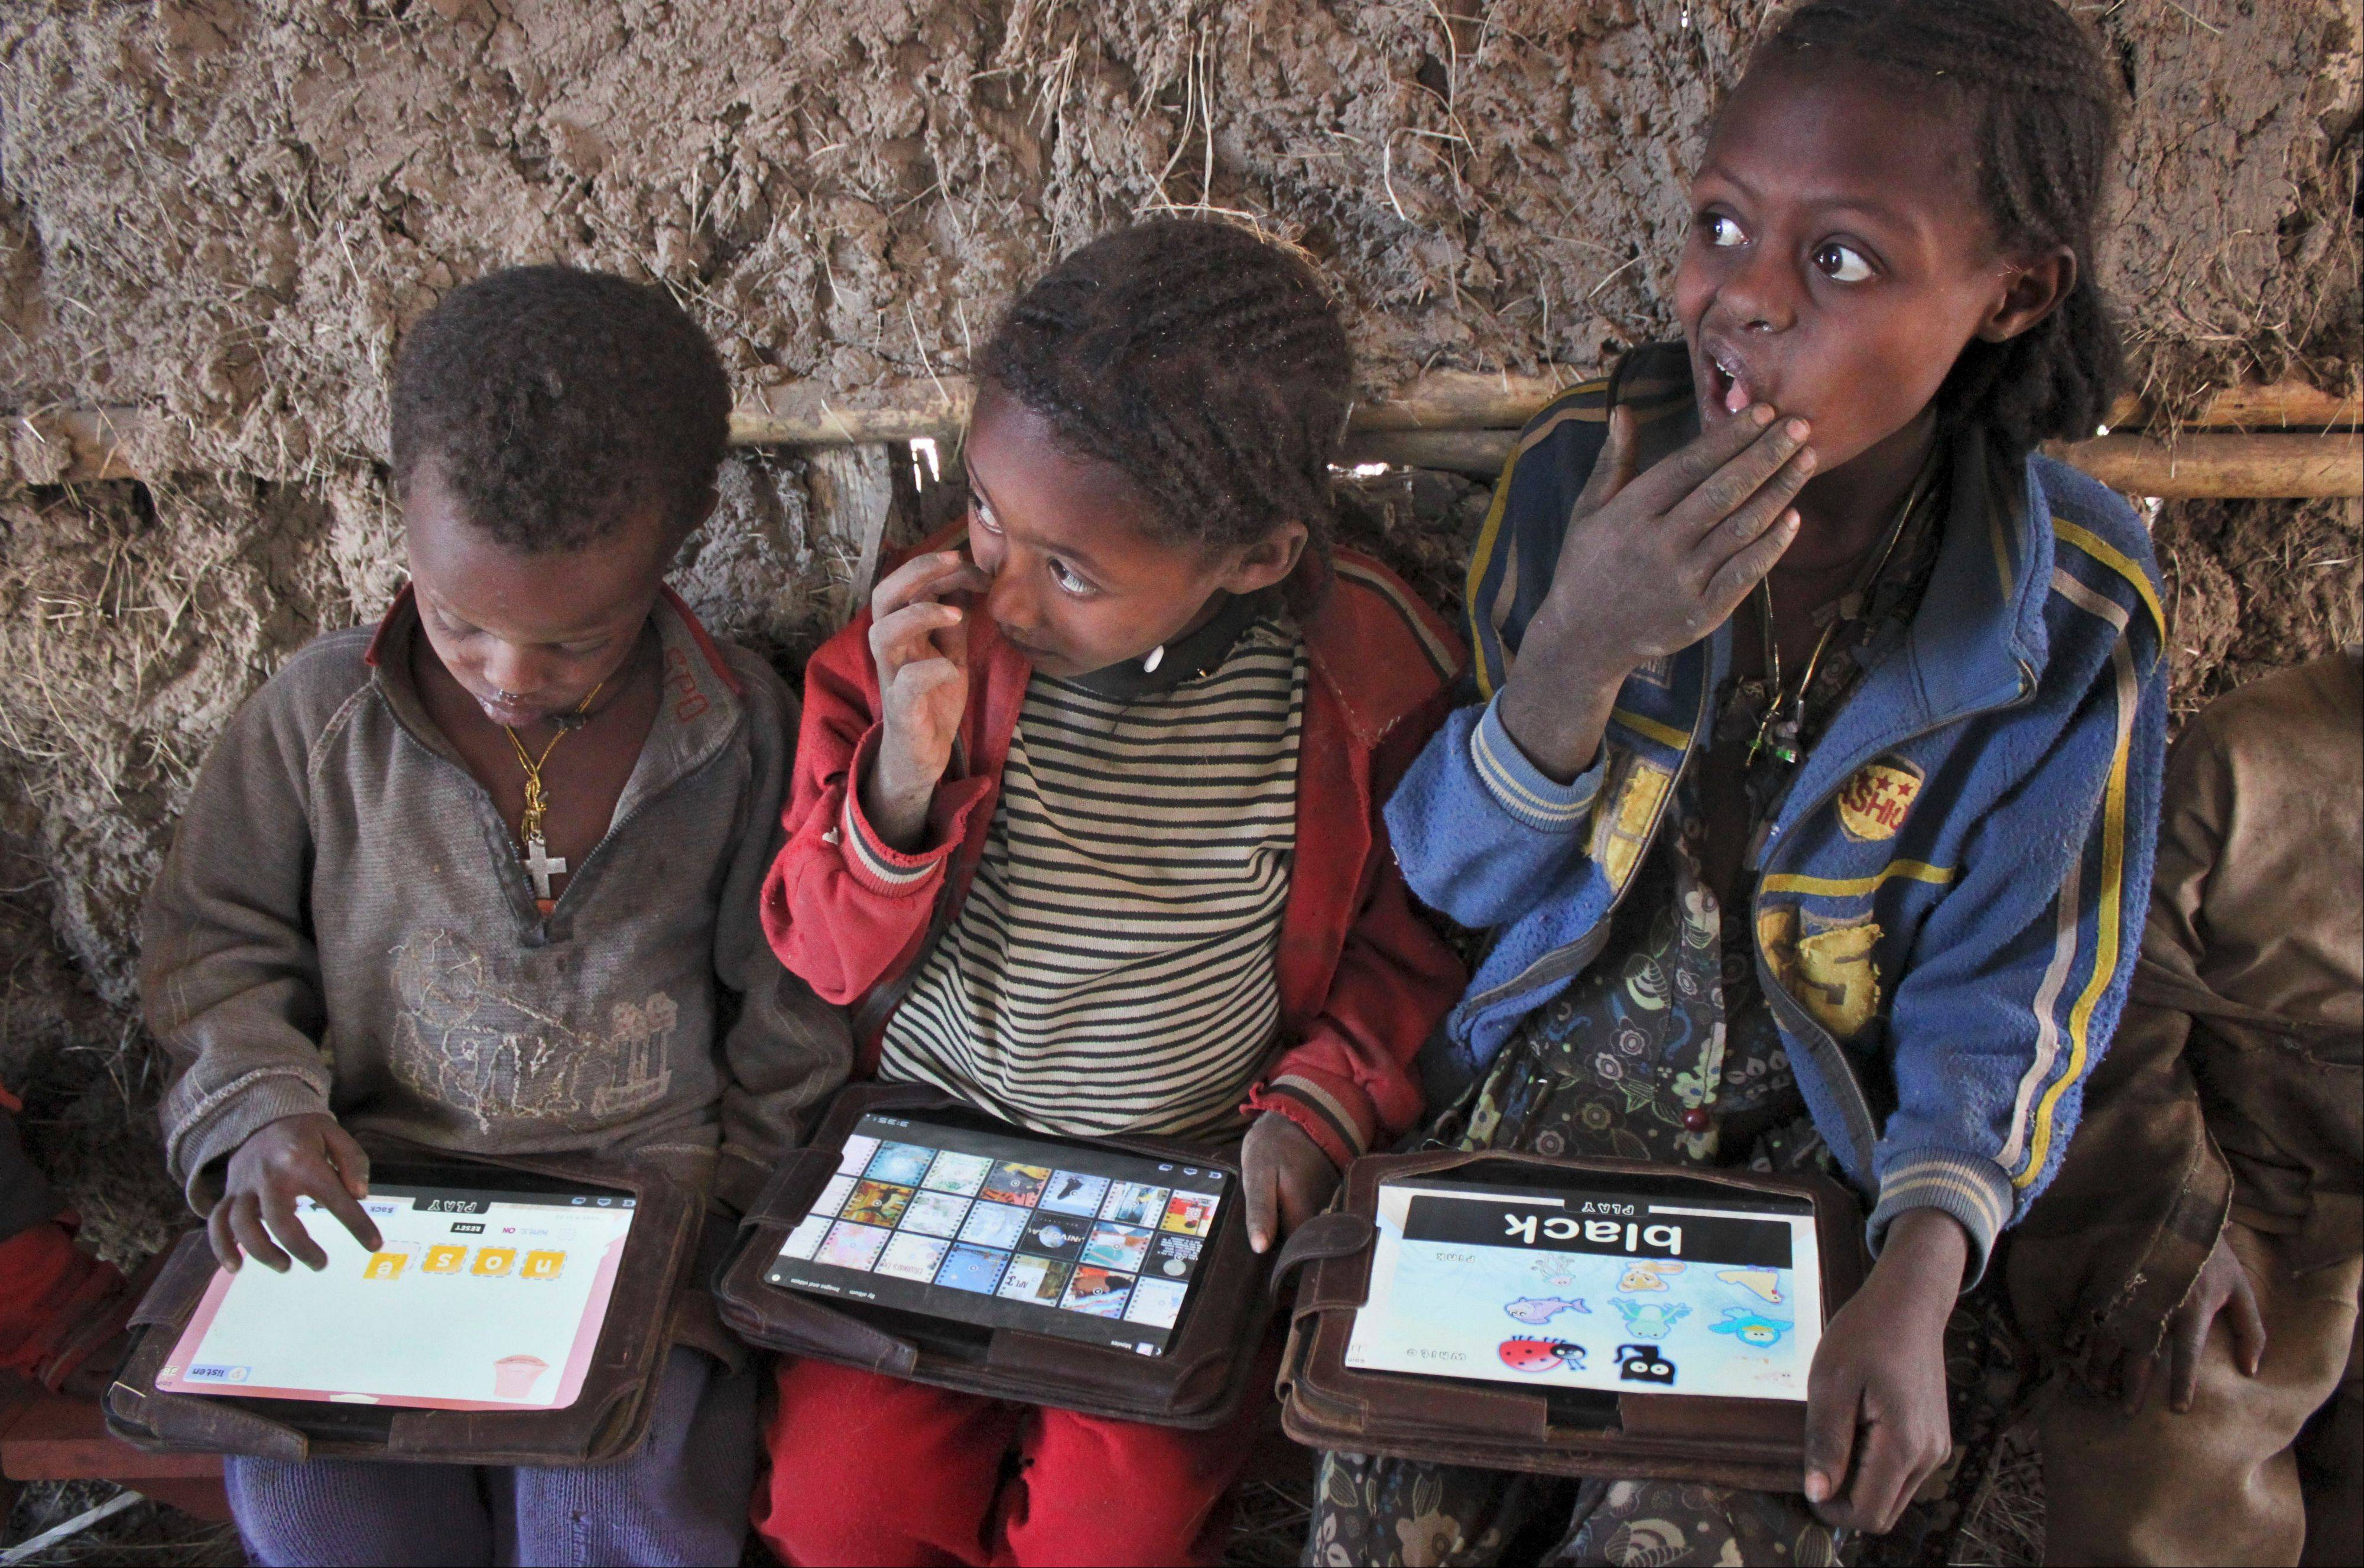 Children play with tablet computers given to them by the One Laptop Per Child project in the village of Wenchi, Ethiopia. The project gave tablets to the children in the poor, illiterate village to see how much the children could teach themselves and now many kids can recite the English alphabet and spell words in English